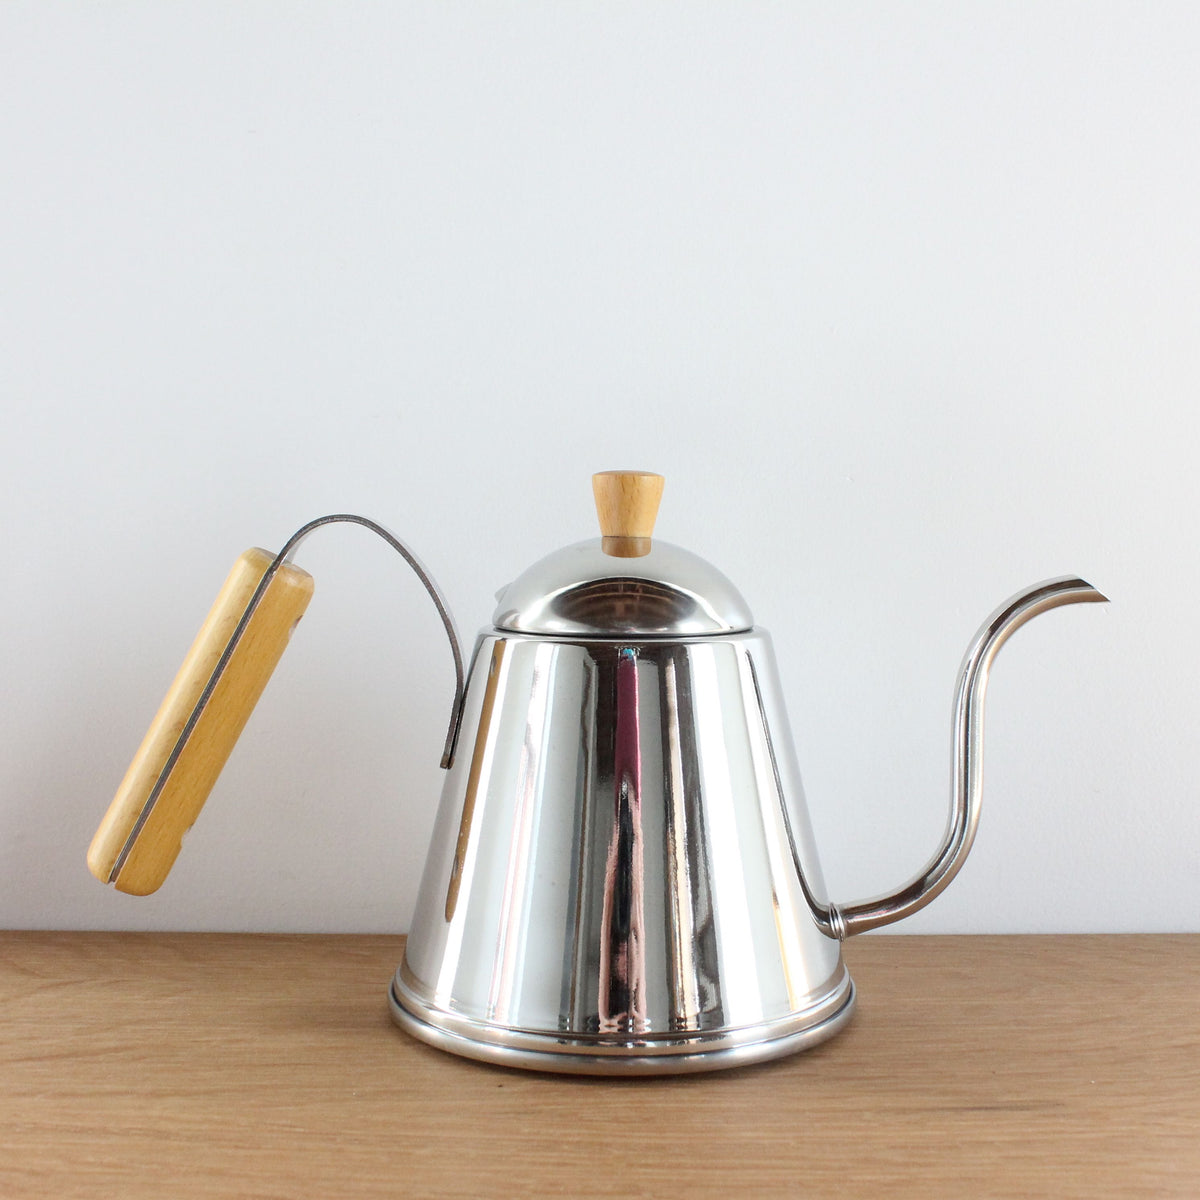 Wood-Handled Kettle